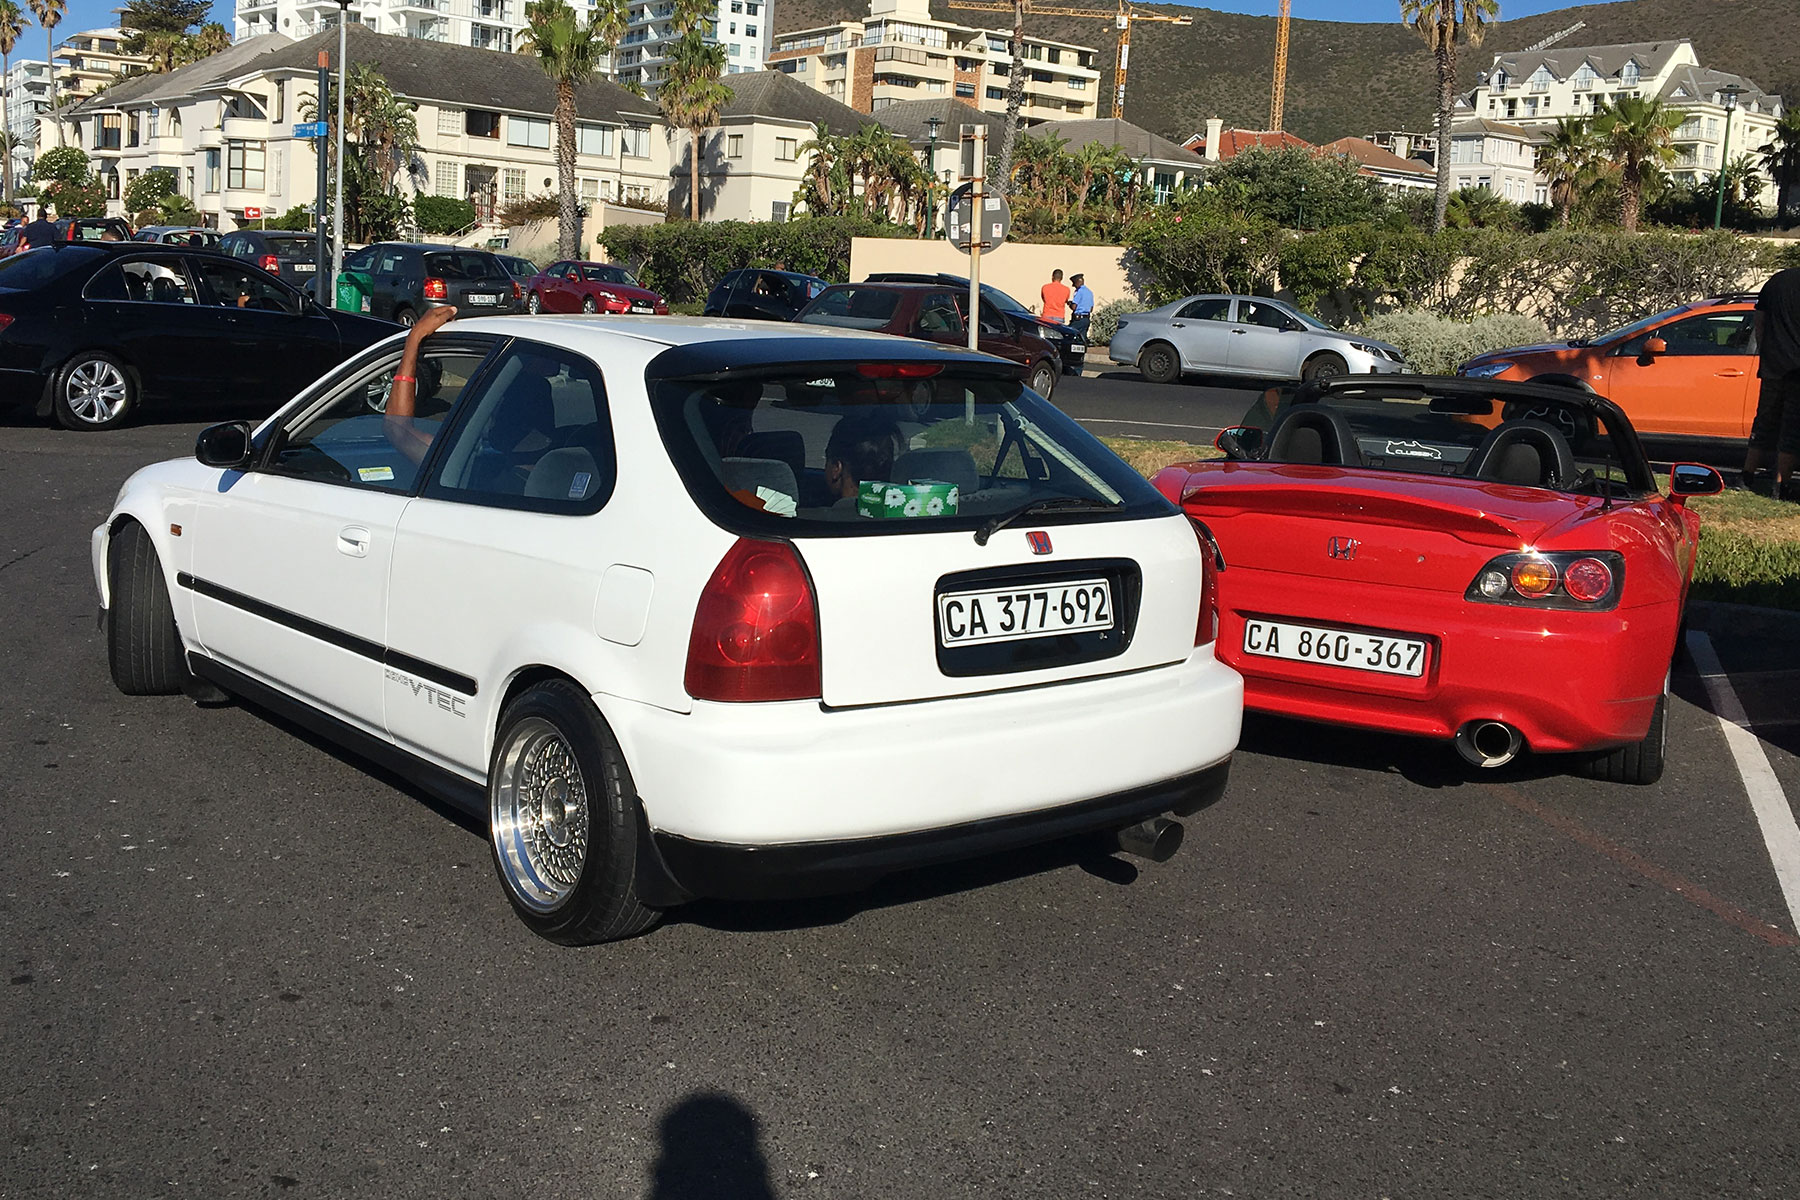 Cape Town: the South African city with incredible car culture